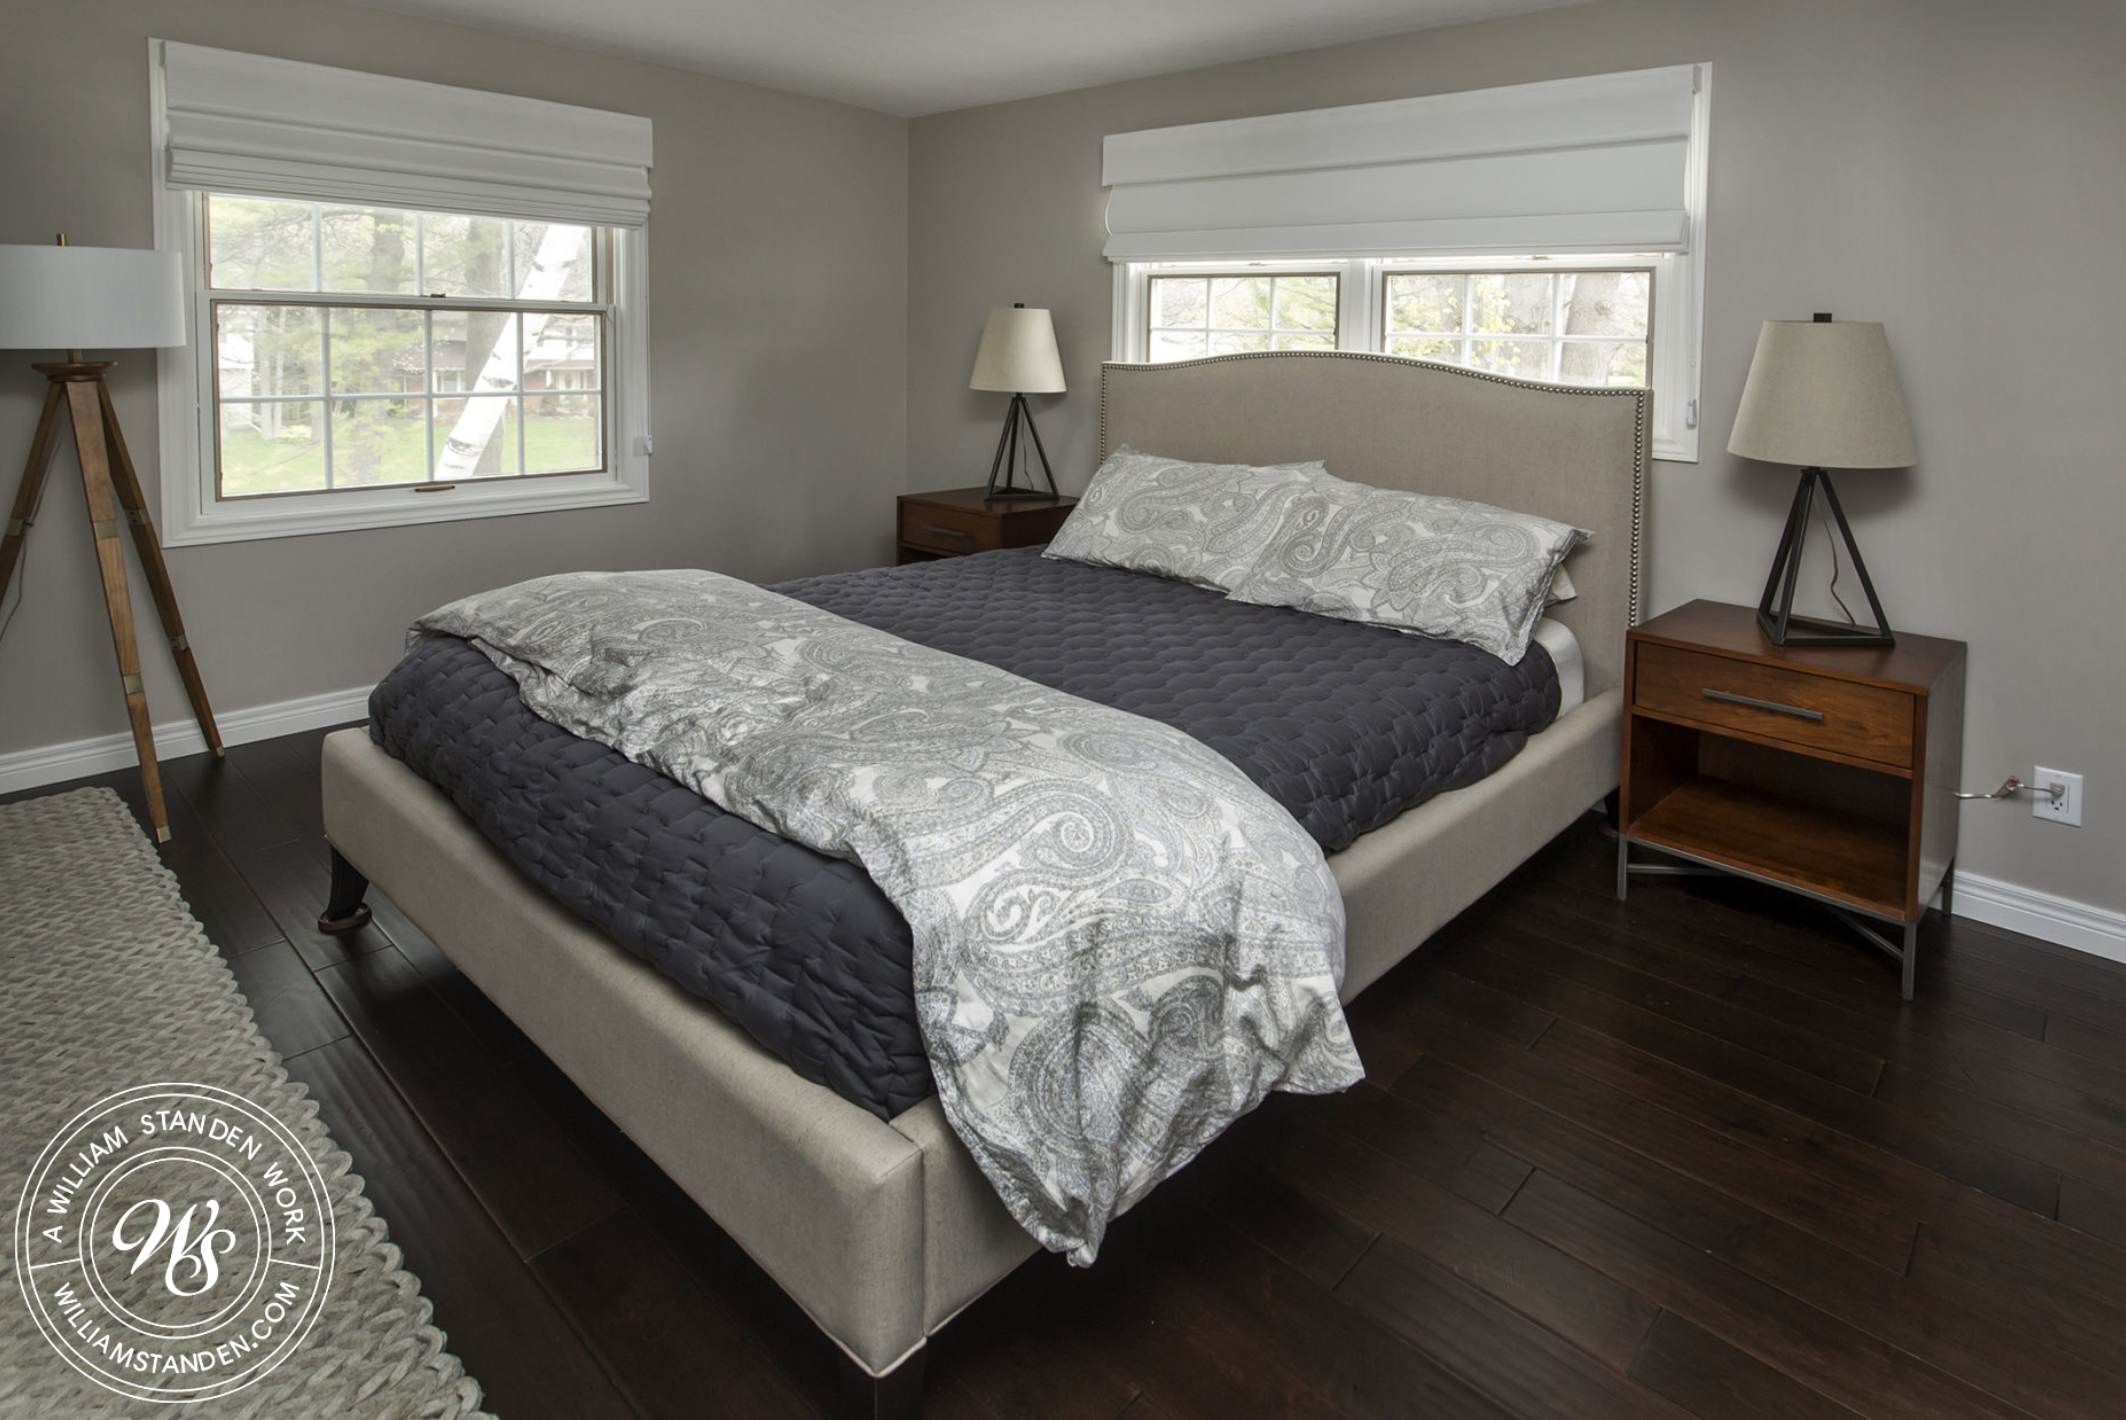 Custom Bedroom Design - Sarnia, Ontario | Bedroom design ...